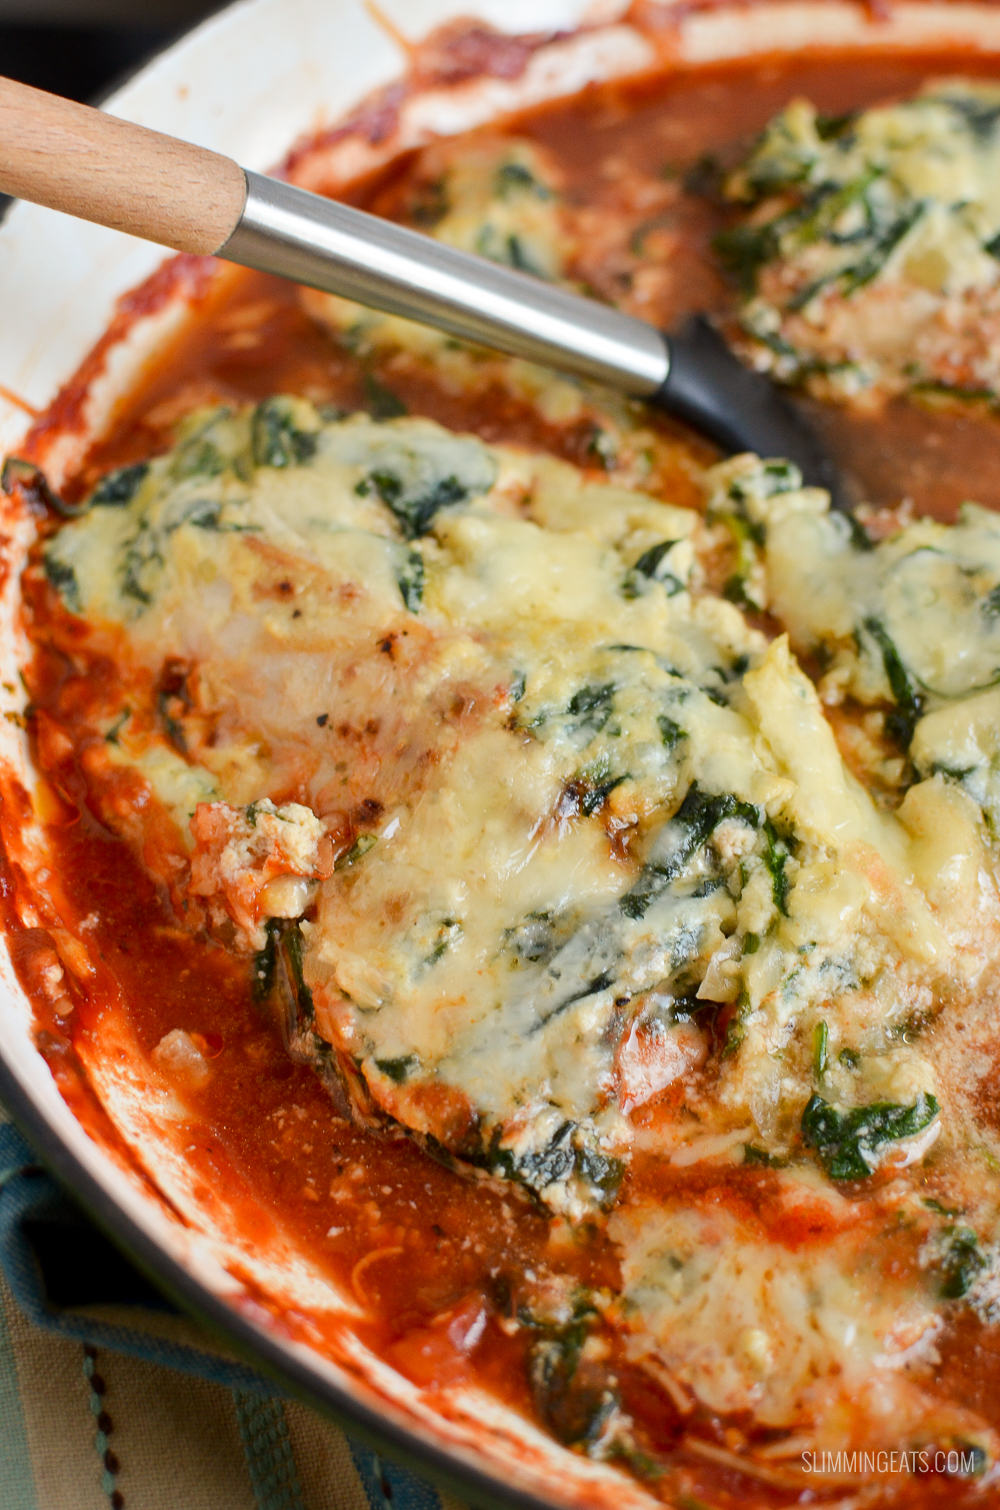 spinach ricotta topped chicken with tomato sauce in skillet with spatula